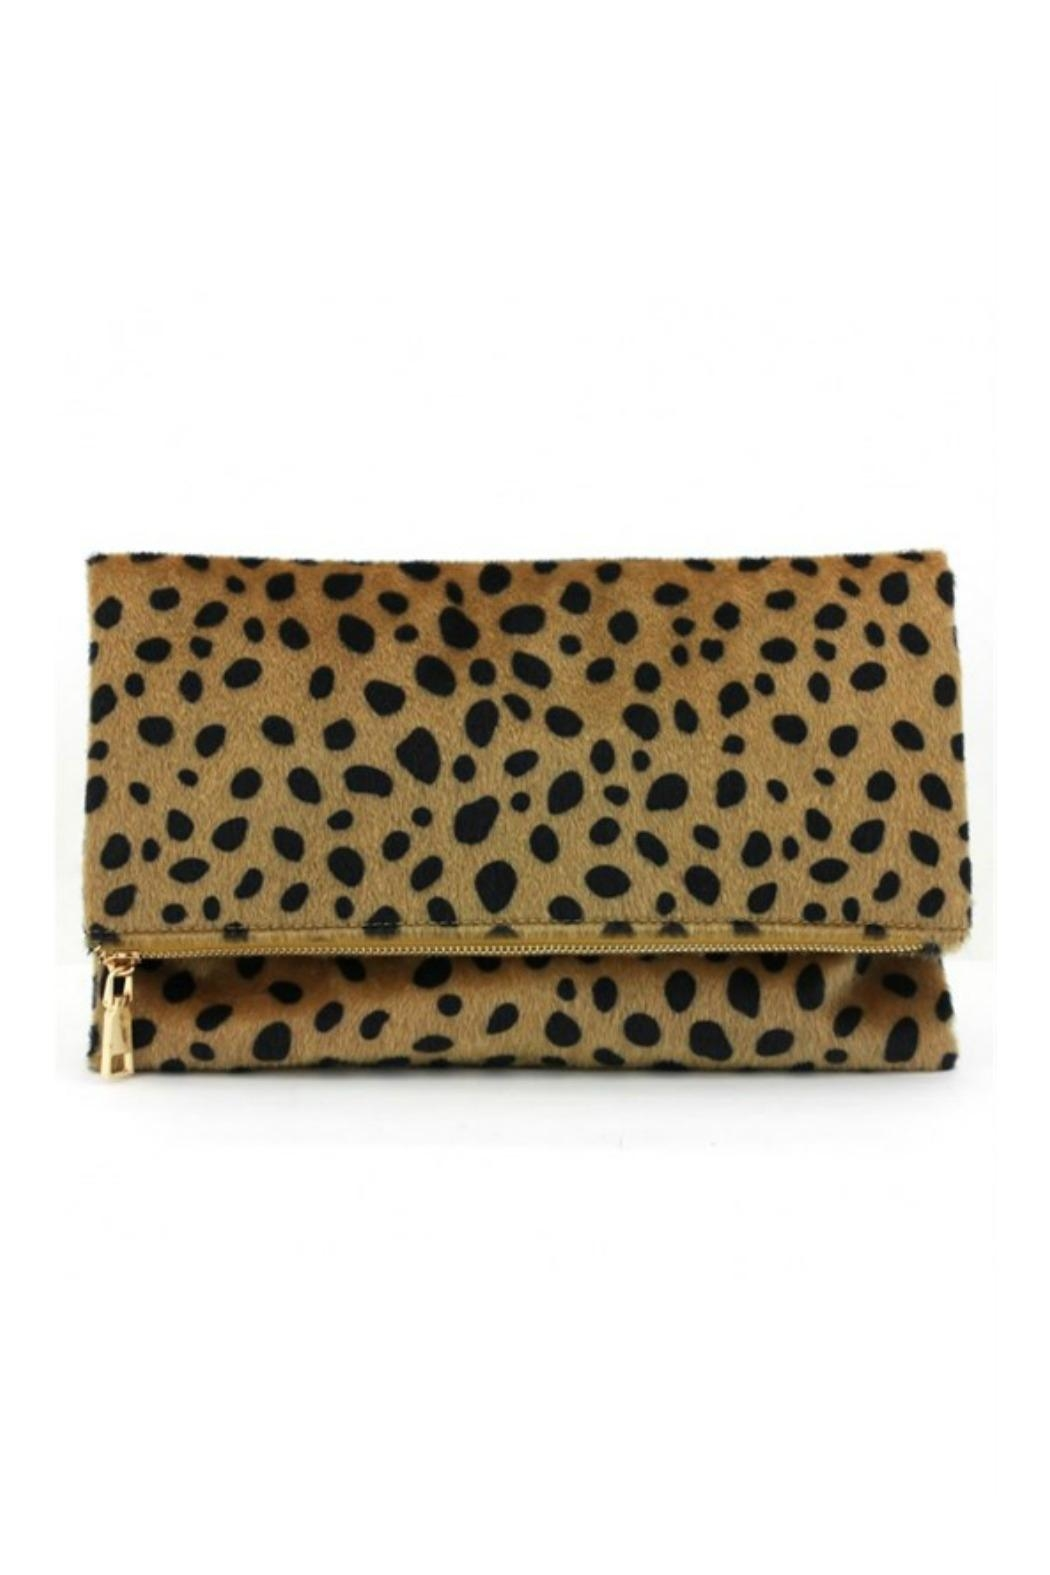 AGP Apparel Leopard Clutch - Main Image